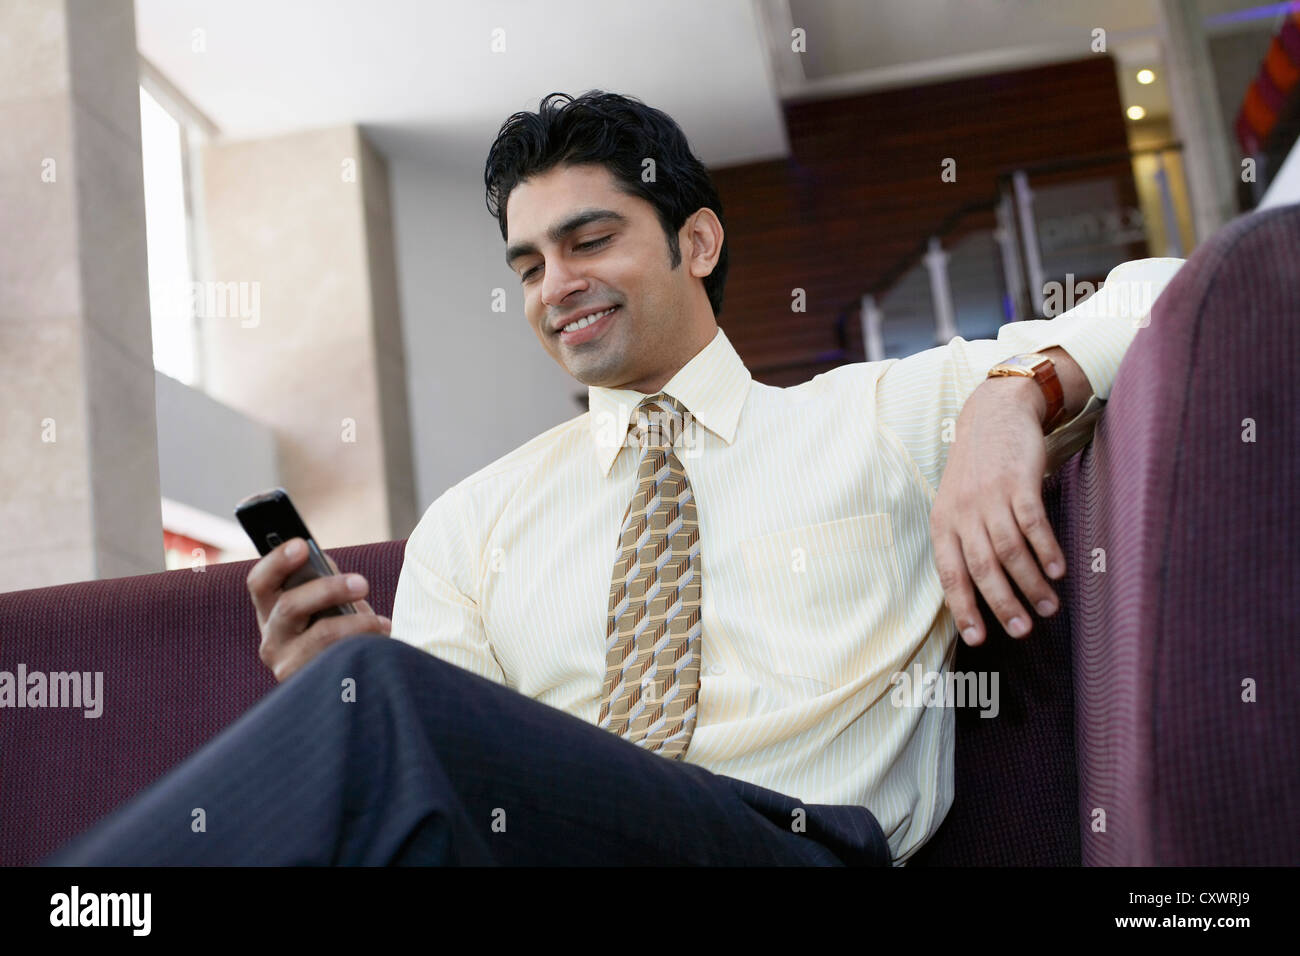 Businessman using cell phone on sofa Photo Stock